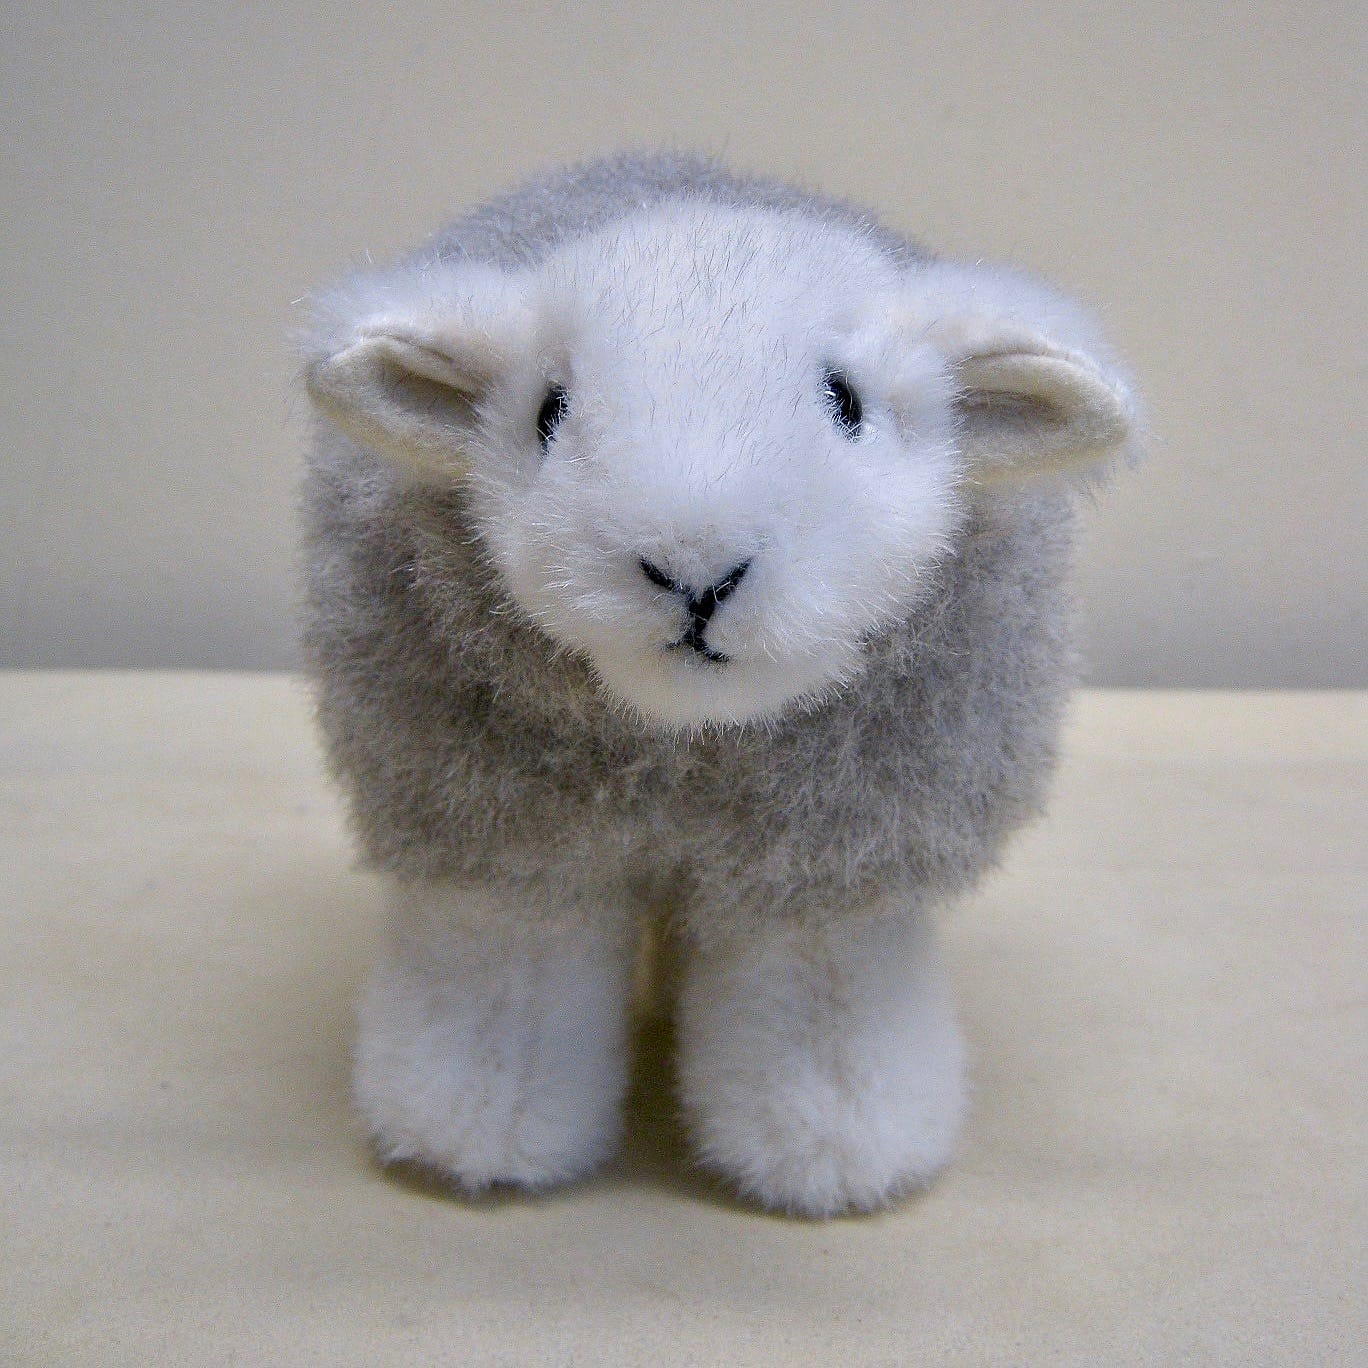 The 1st prototype of My Herdy!